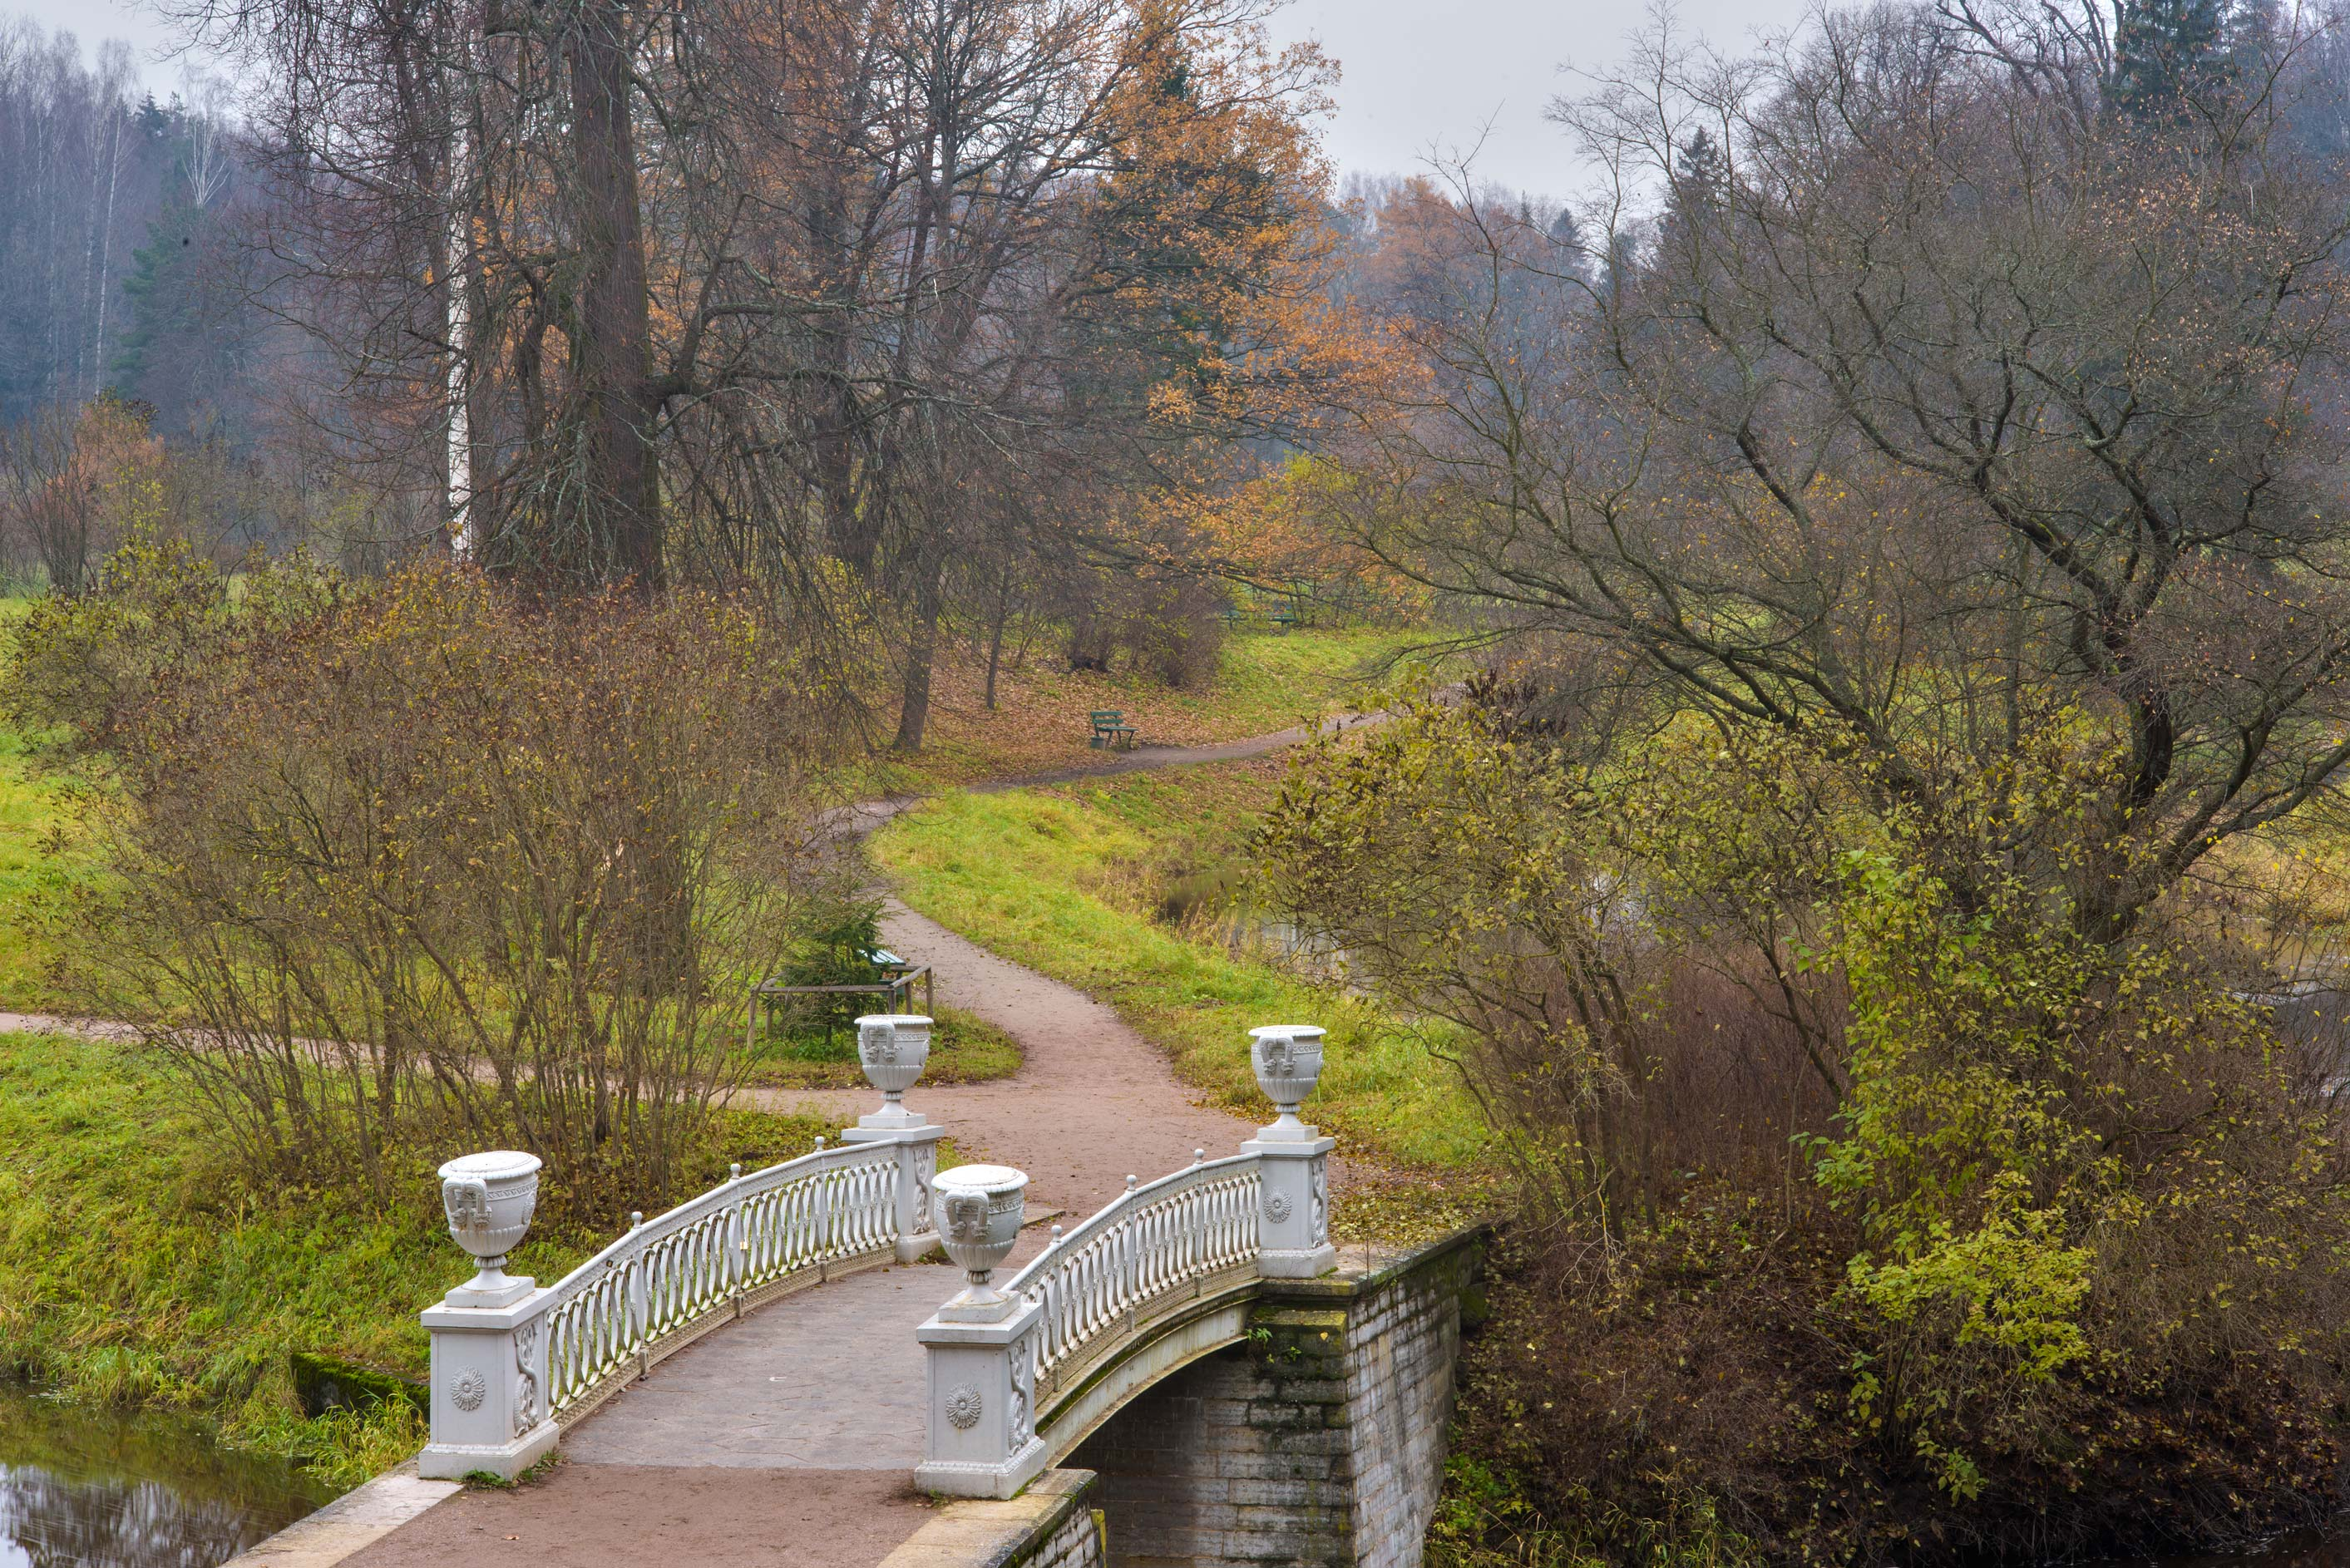 Iron bridge of Slavyanka River in Pavlovsk Park. Pavlovsk, suburb of St.Petersburg, Russia